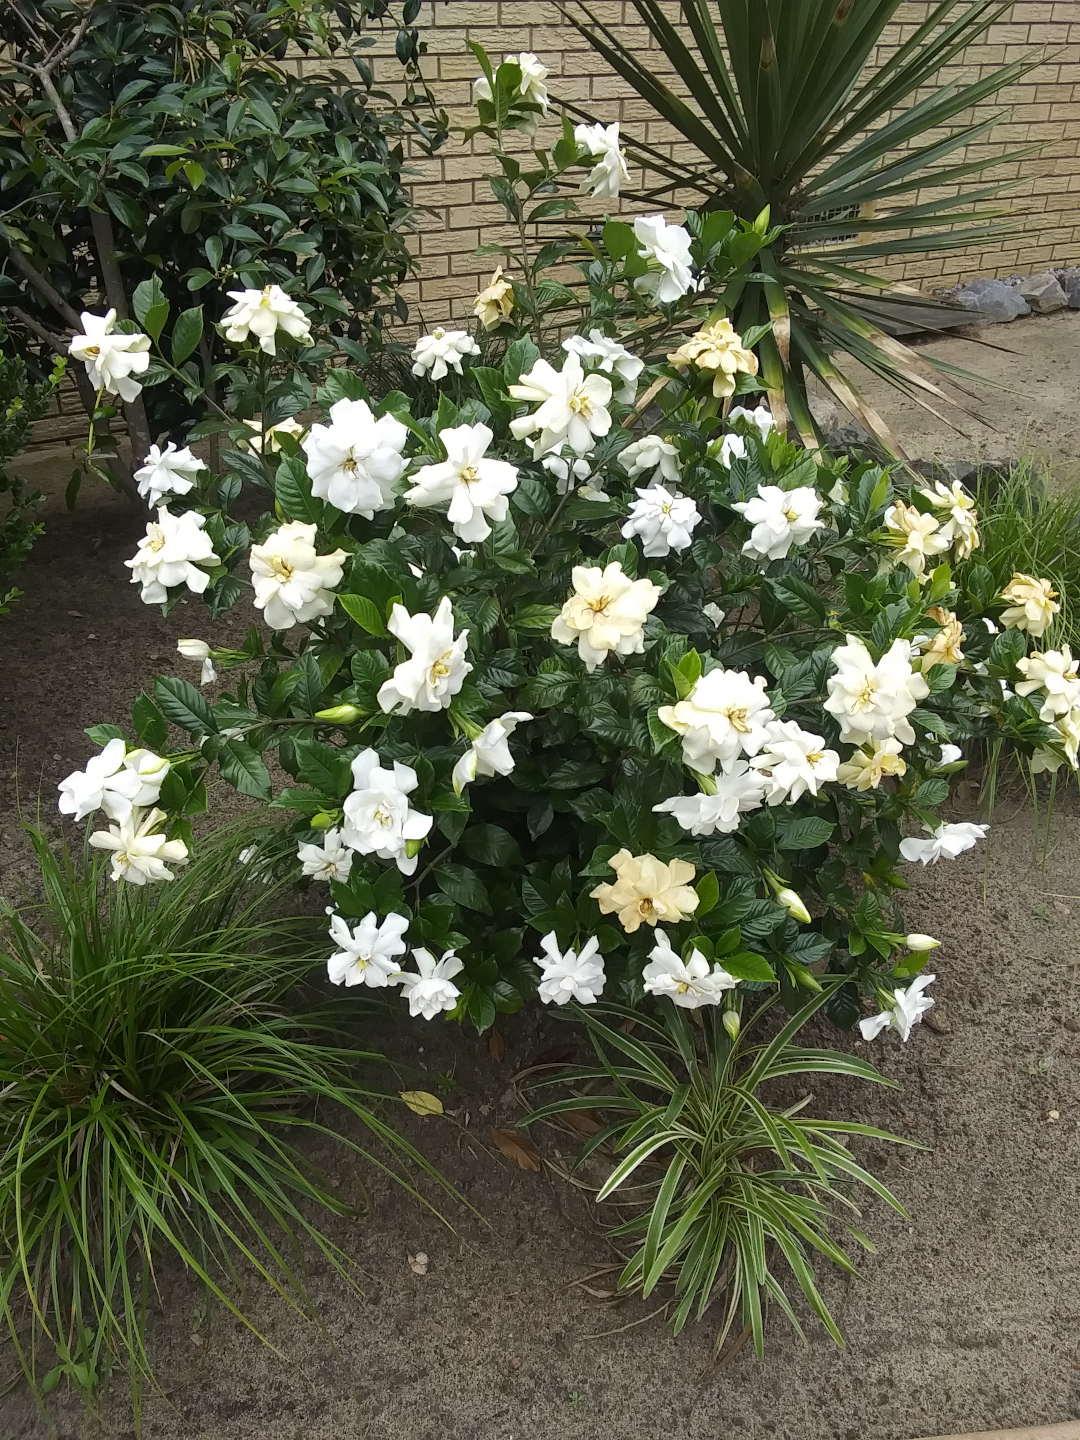 shrub with glossy leaves and white flowers